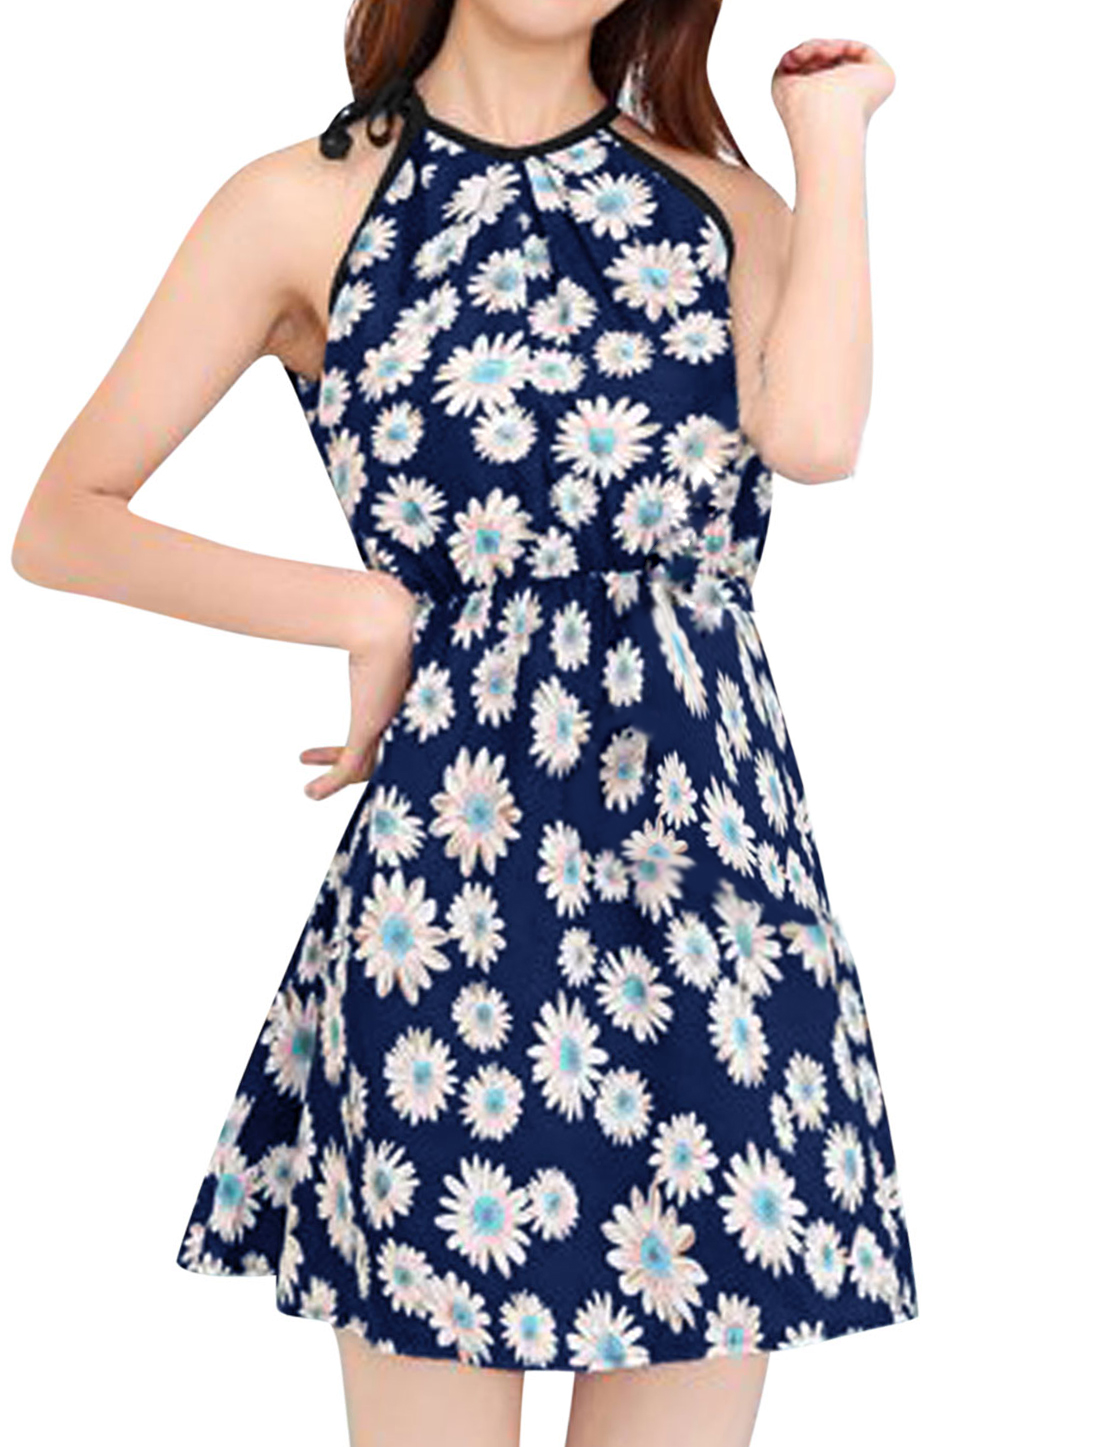 Women Cut Out Back Halter Neck Floral Pattern Beach Dresses Navy Blue White XS